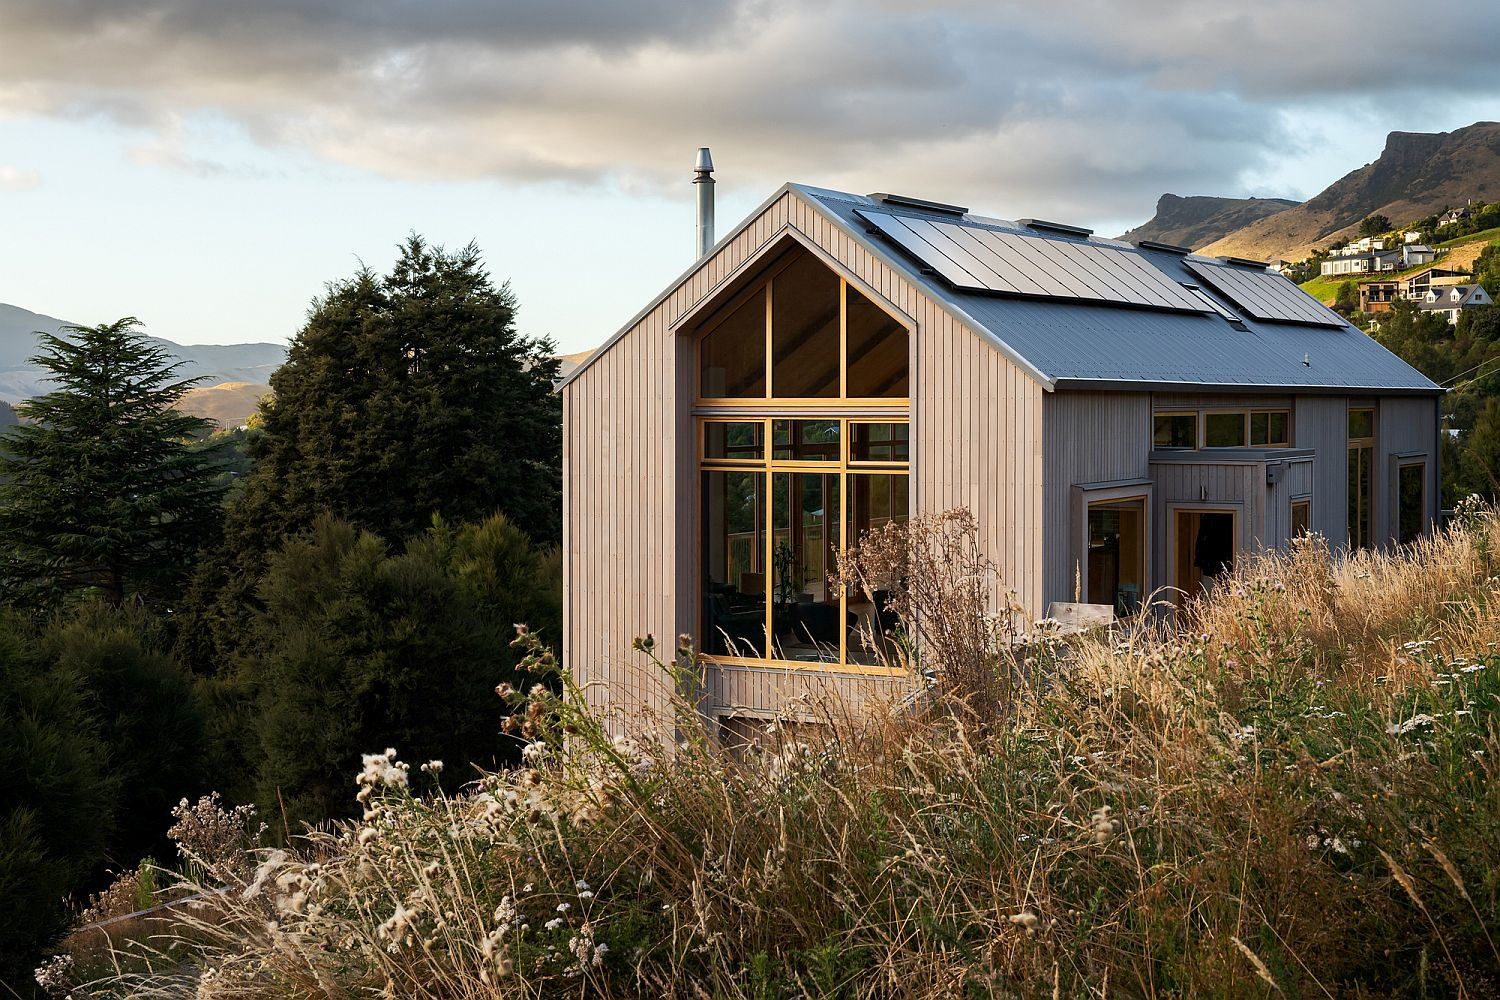 Gorgeous Governors Bay House in New Zealand with lovely natural views